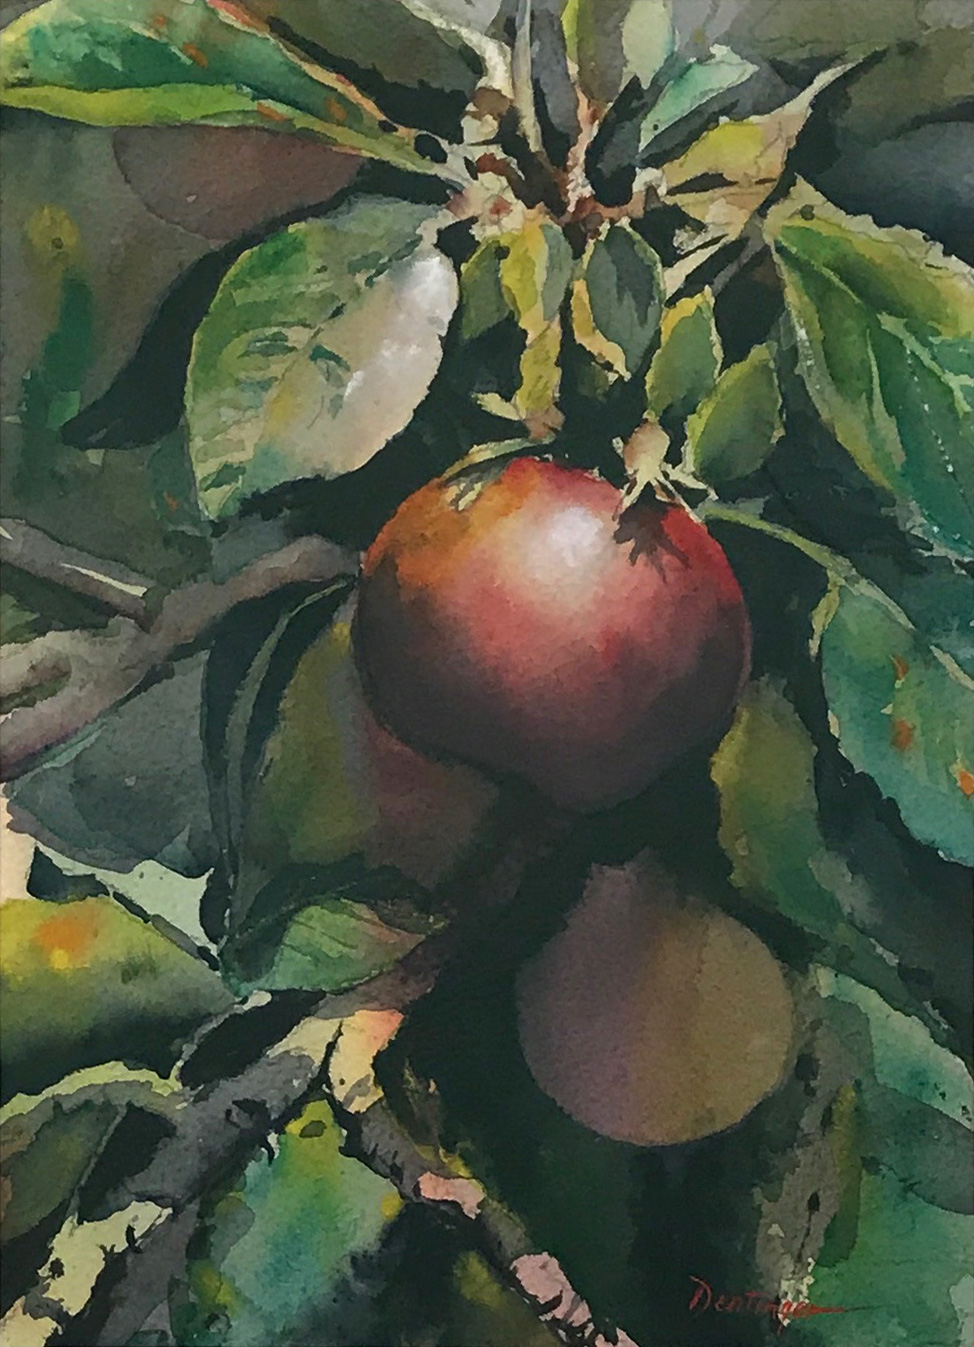 Apples on a vine painting by Ric Dentinger | Felder Gallery